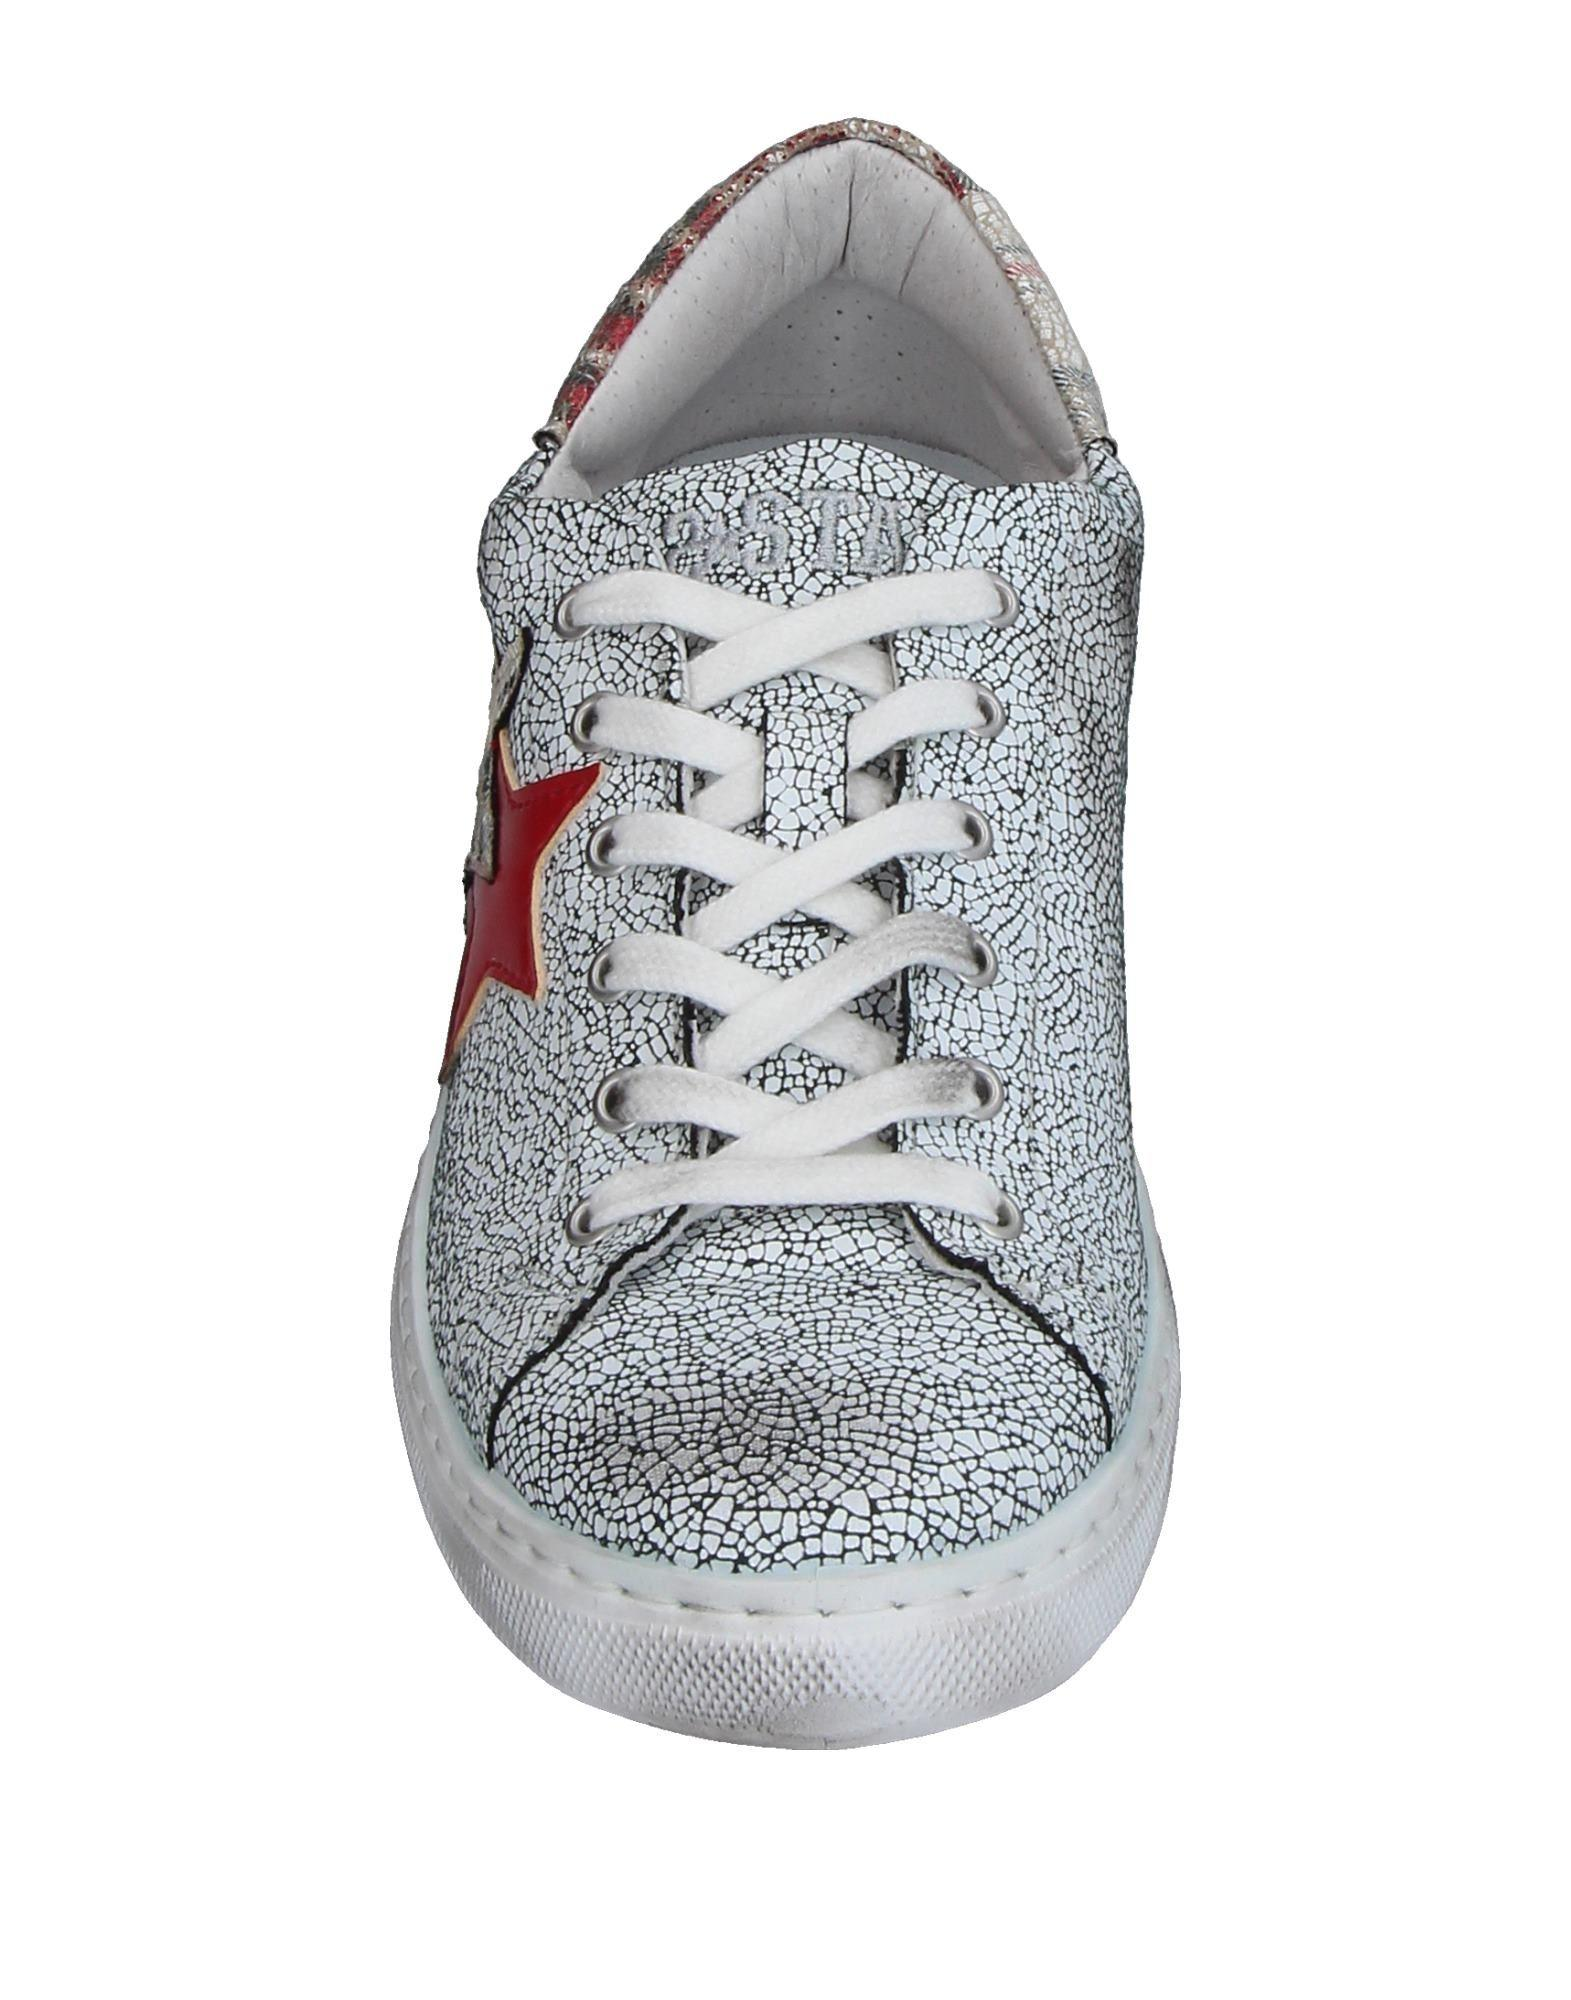 2Star Low-tops & Sneakers in White